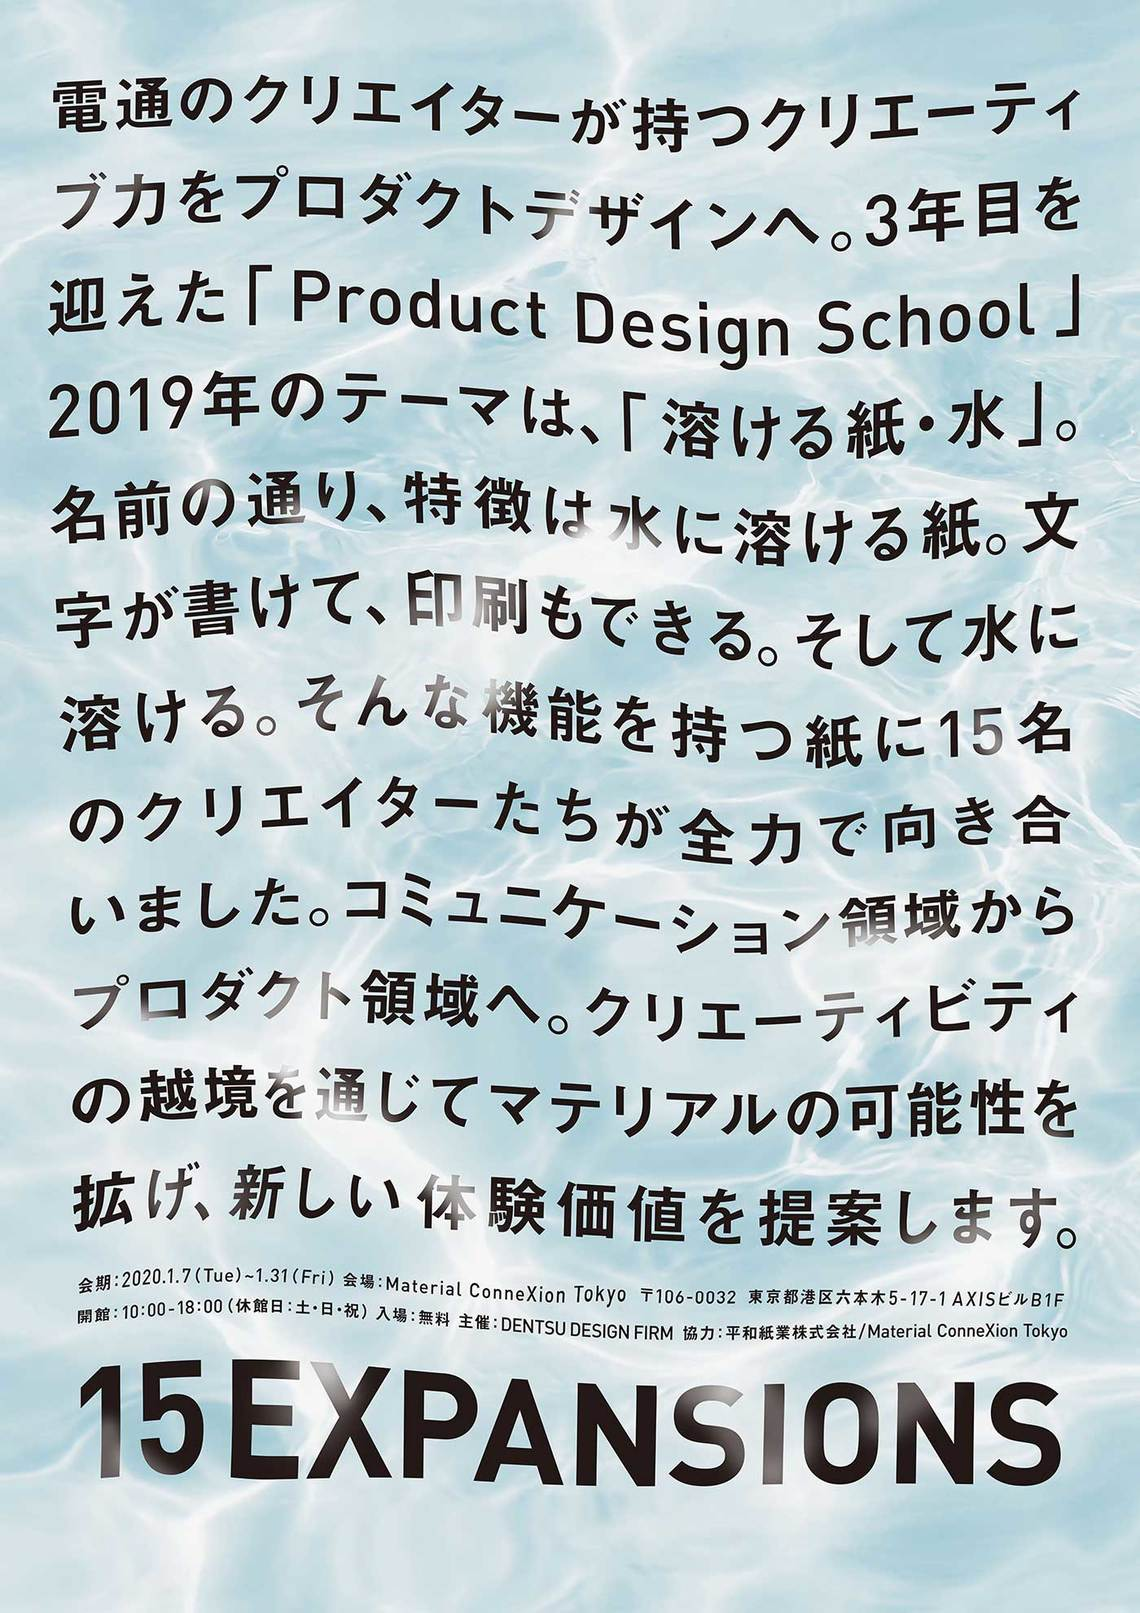 「15 EXPANSIONS - Product Design School 2019-」ポスター